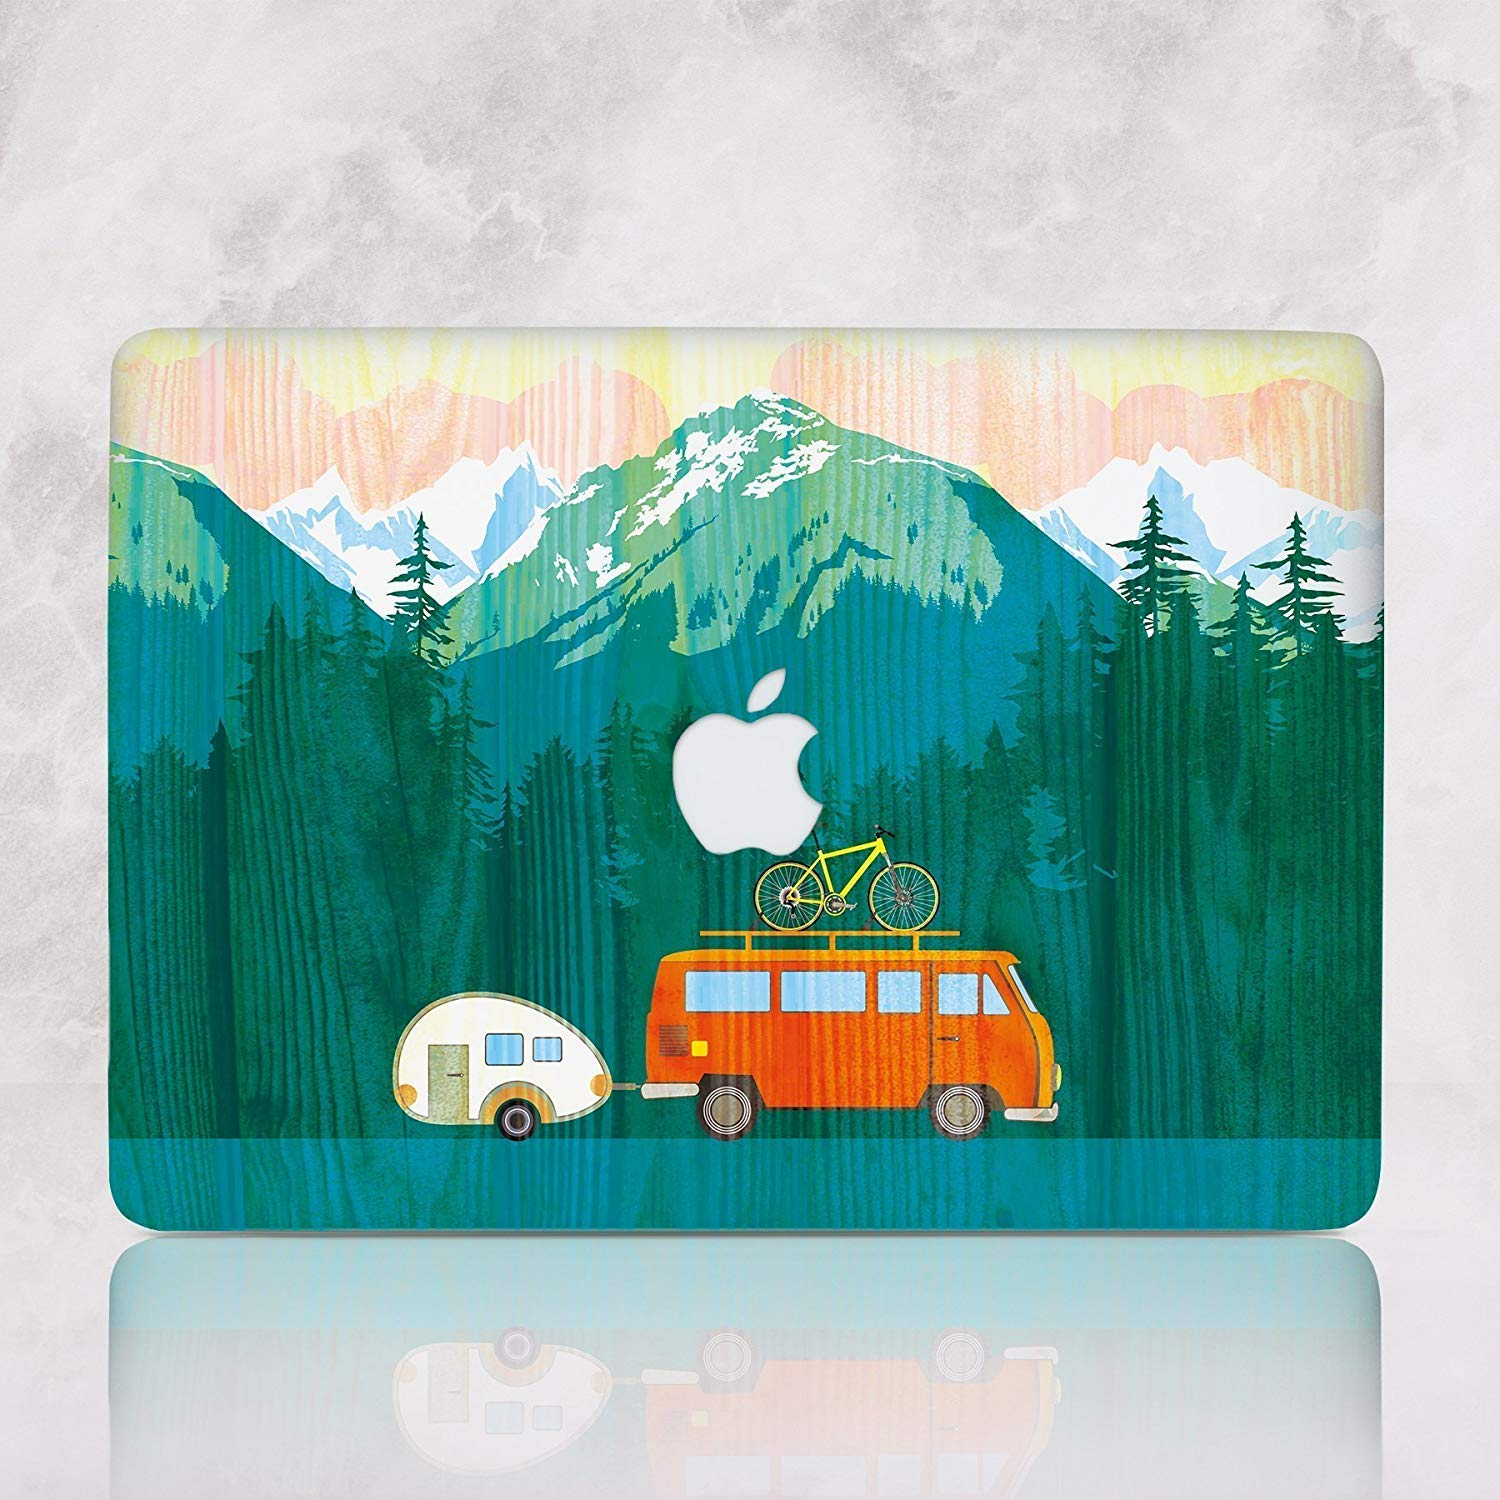 Like Wooden Hard Case for Macbook Pro 15 A1707 A1909 Love To Travel Mountains Laptop Case for Apple Mac Pro 15 inch Fits 2018 Latest Release Durable shell Cover RD2125